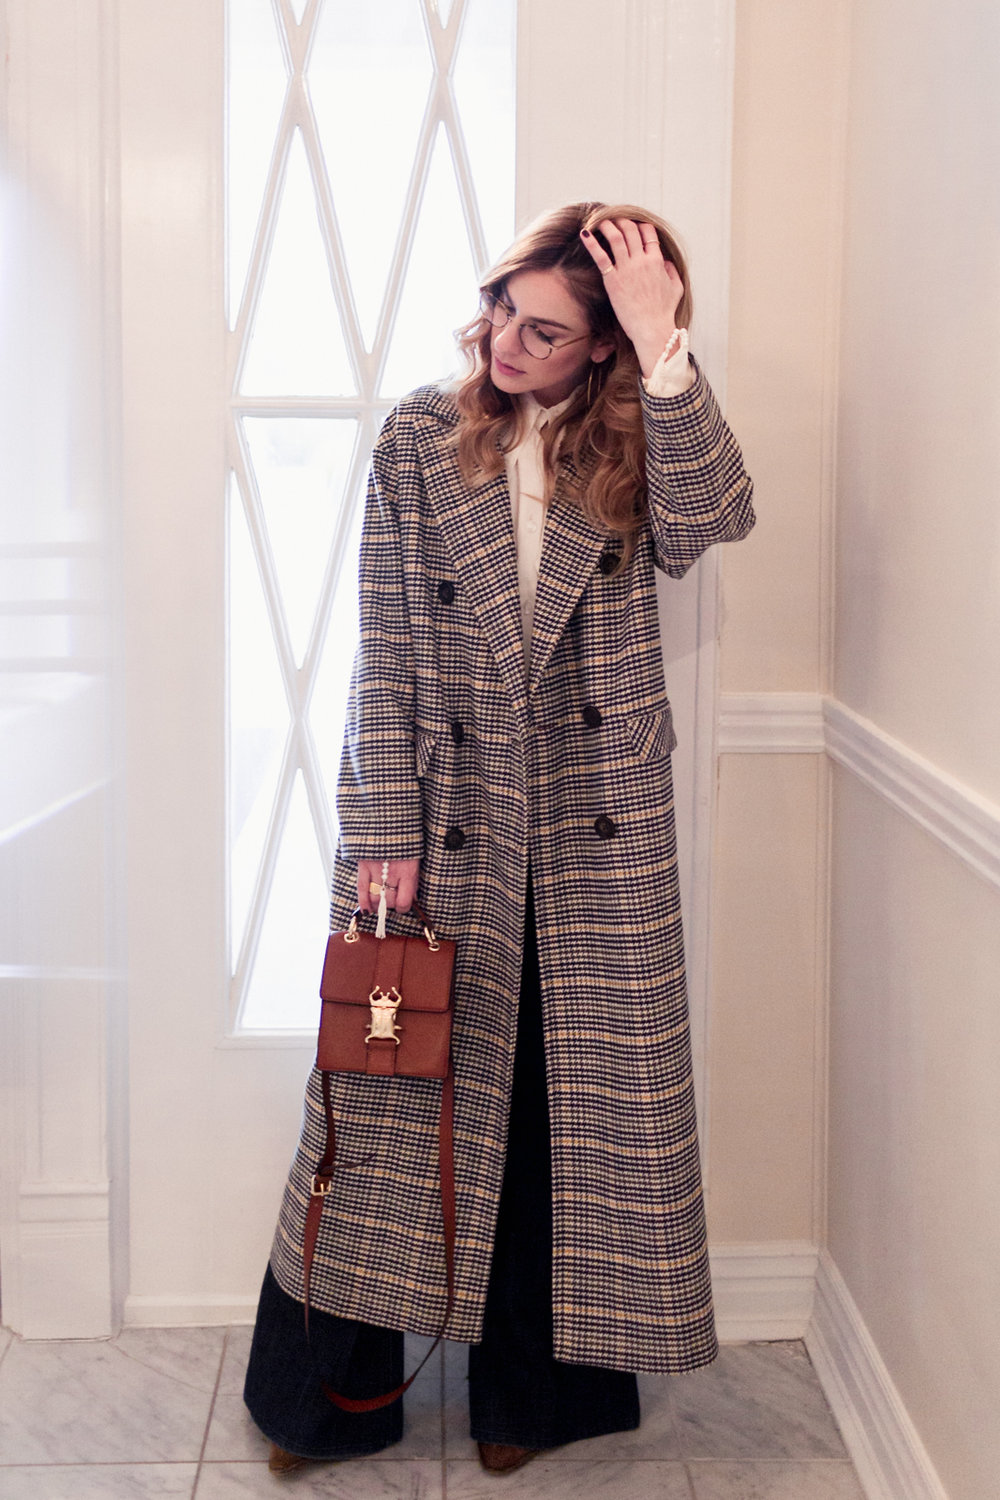 Eldridge Edit_anna_e_cottrell_fashion_blog_blogger_nordstrom_topshop_houndstooth_double_breasted_duster_coat_sale_topshop_garret_leight_glasses_thatch_lola_14k_gold_hoops_vintage_zara_bug_bag_mgb_photo_2.jpg